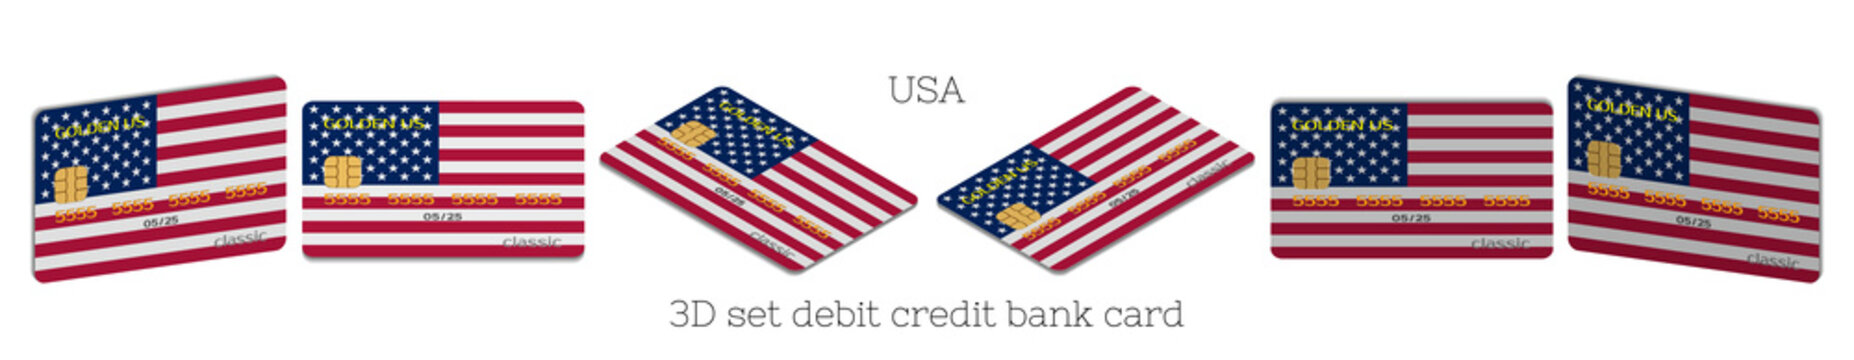 3D set of plastic bank cards with the USA flag in six projections and a shadow on white background. EPS10